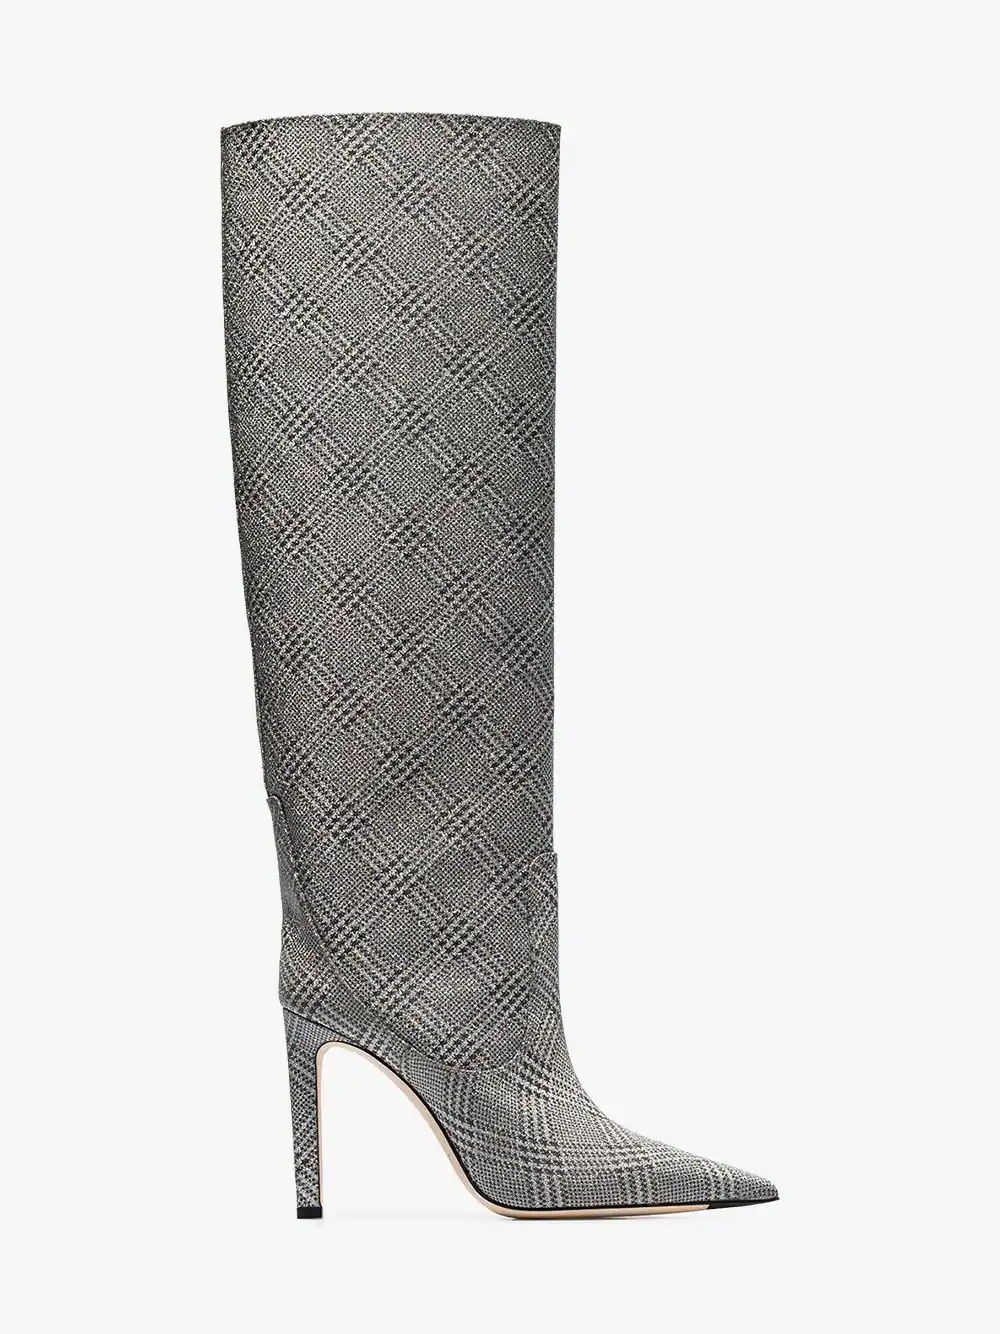 6f2f9e1ad25 Jimmy Choo Mavis 100 Prince Of Wales Checked Glittered Leather Boots In  Silver